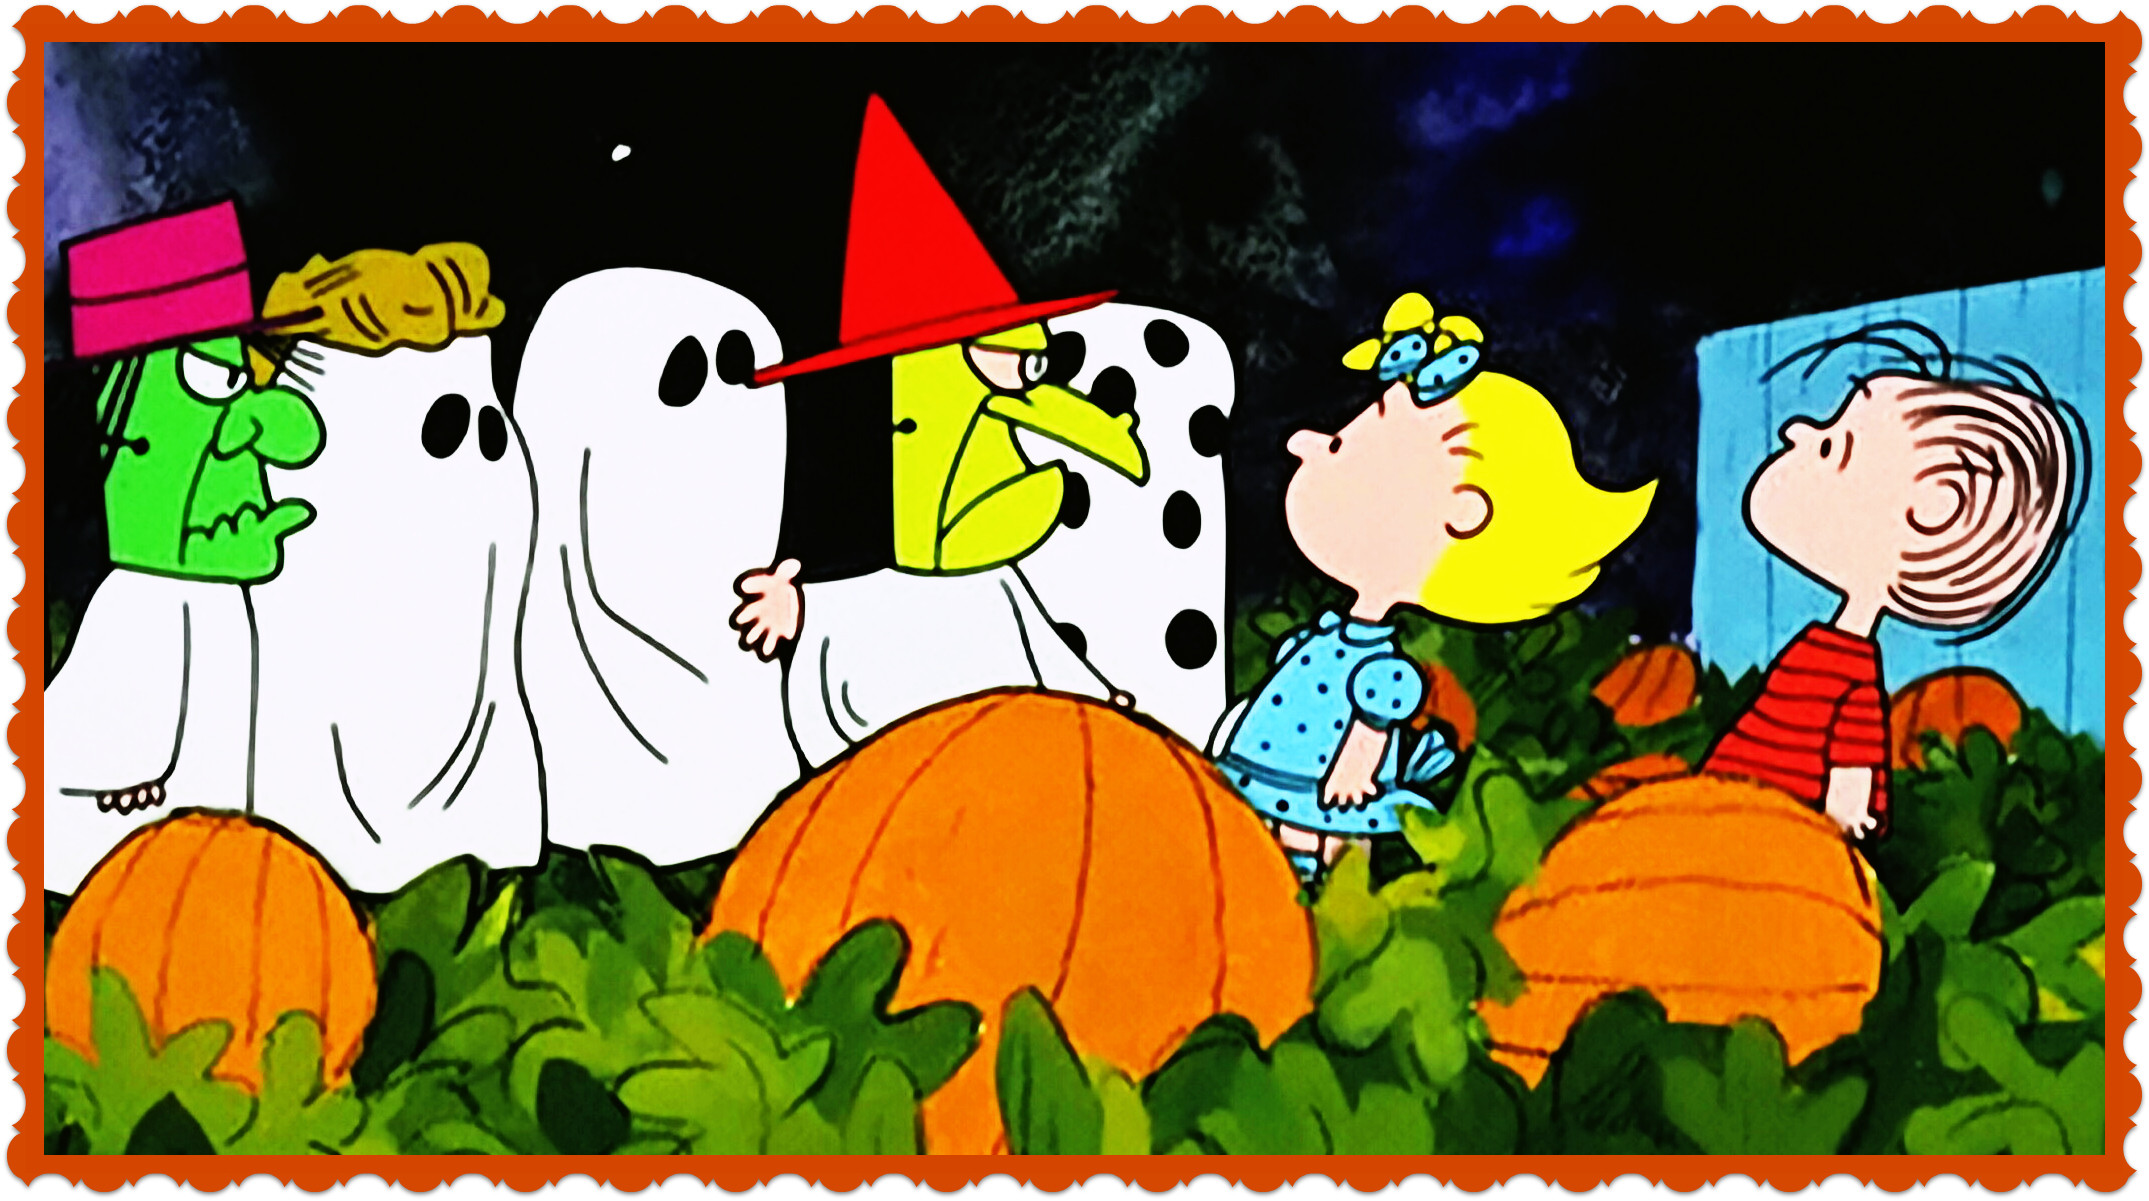 charlie brown halloween wallpaper download 1920x1080